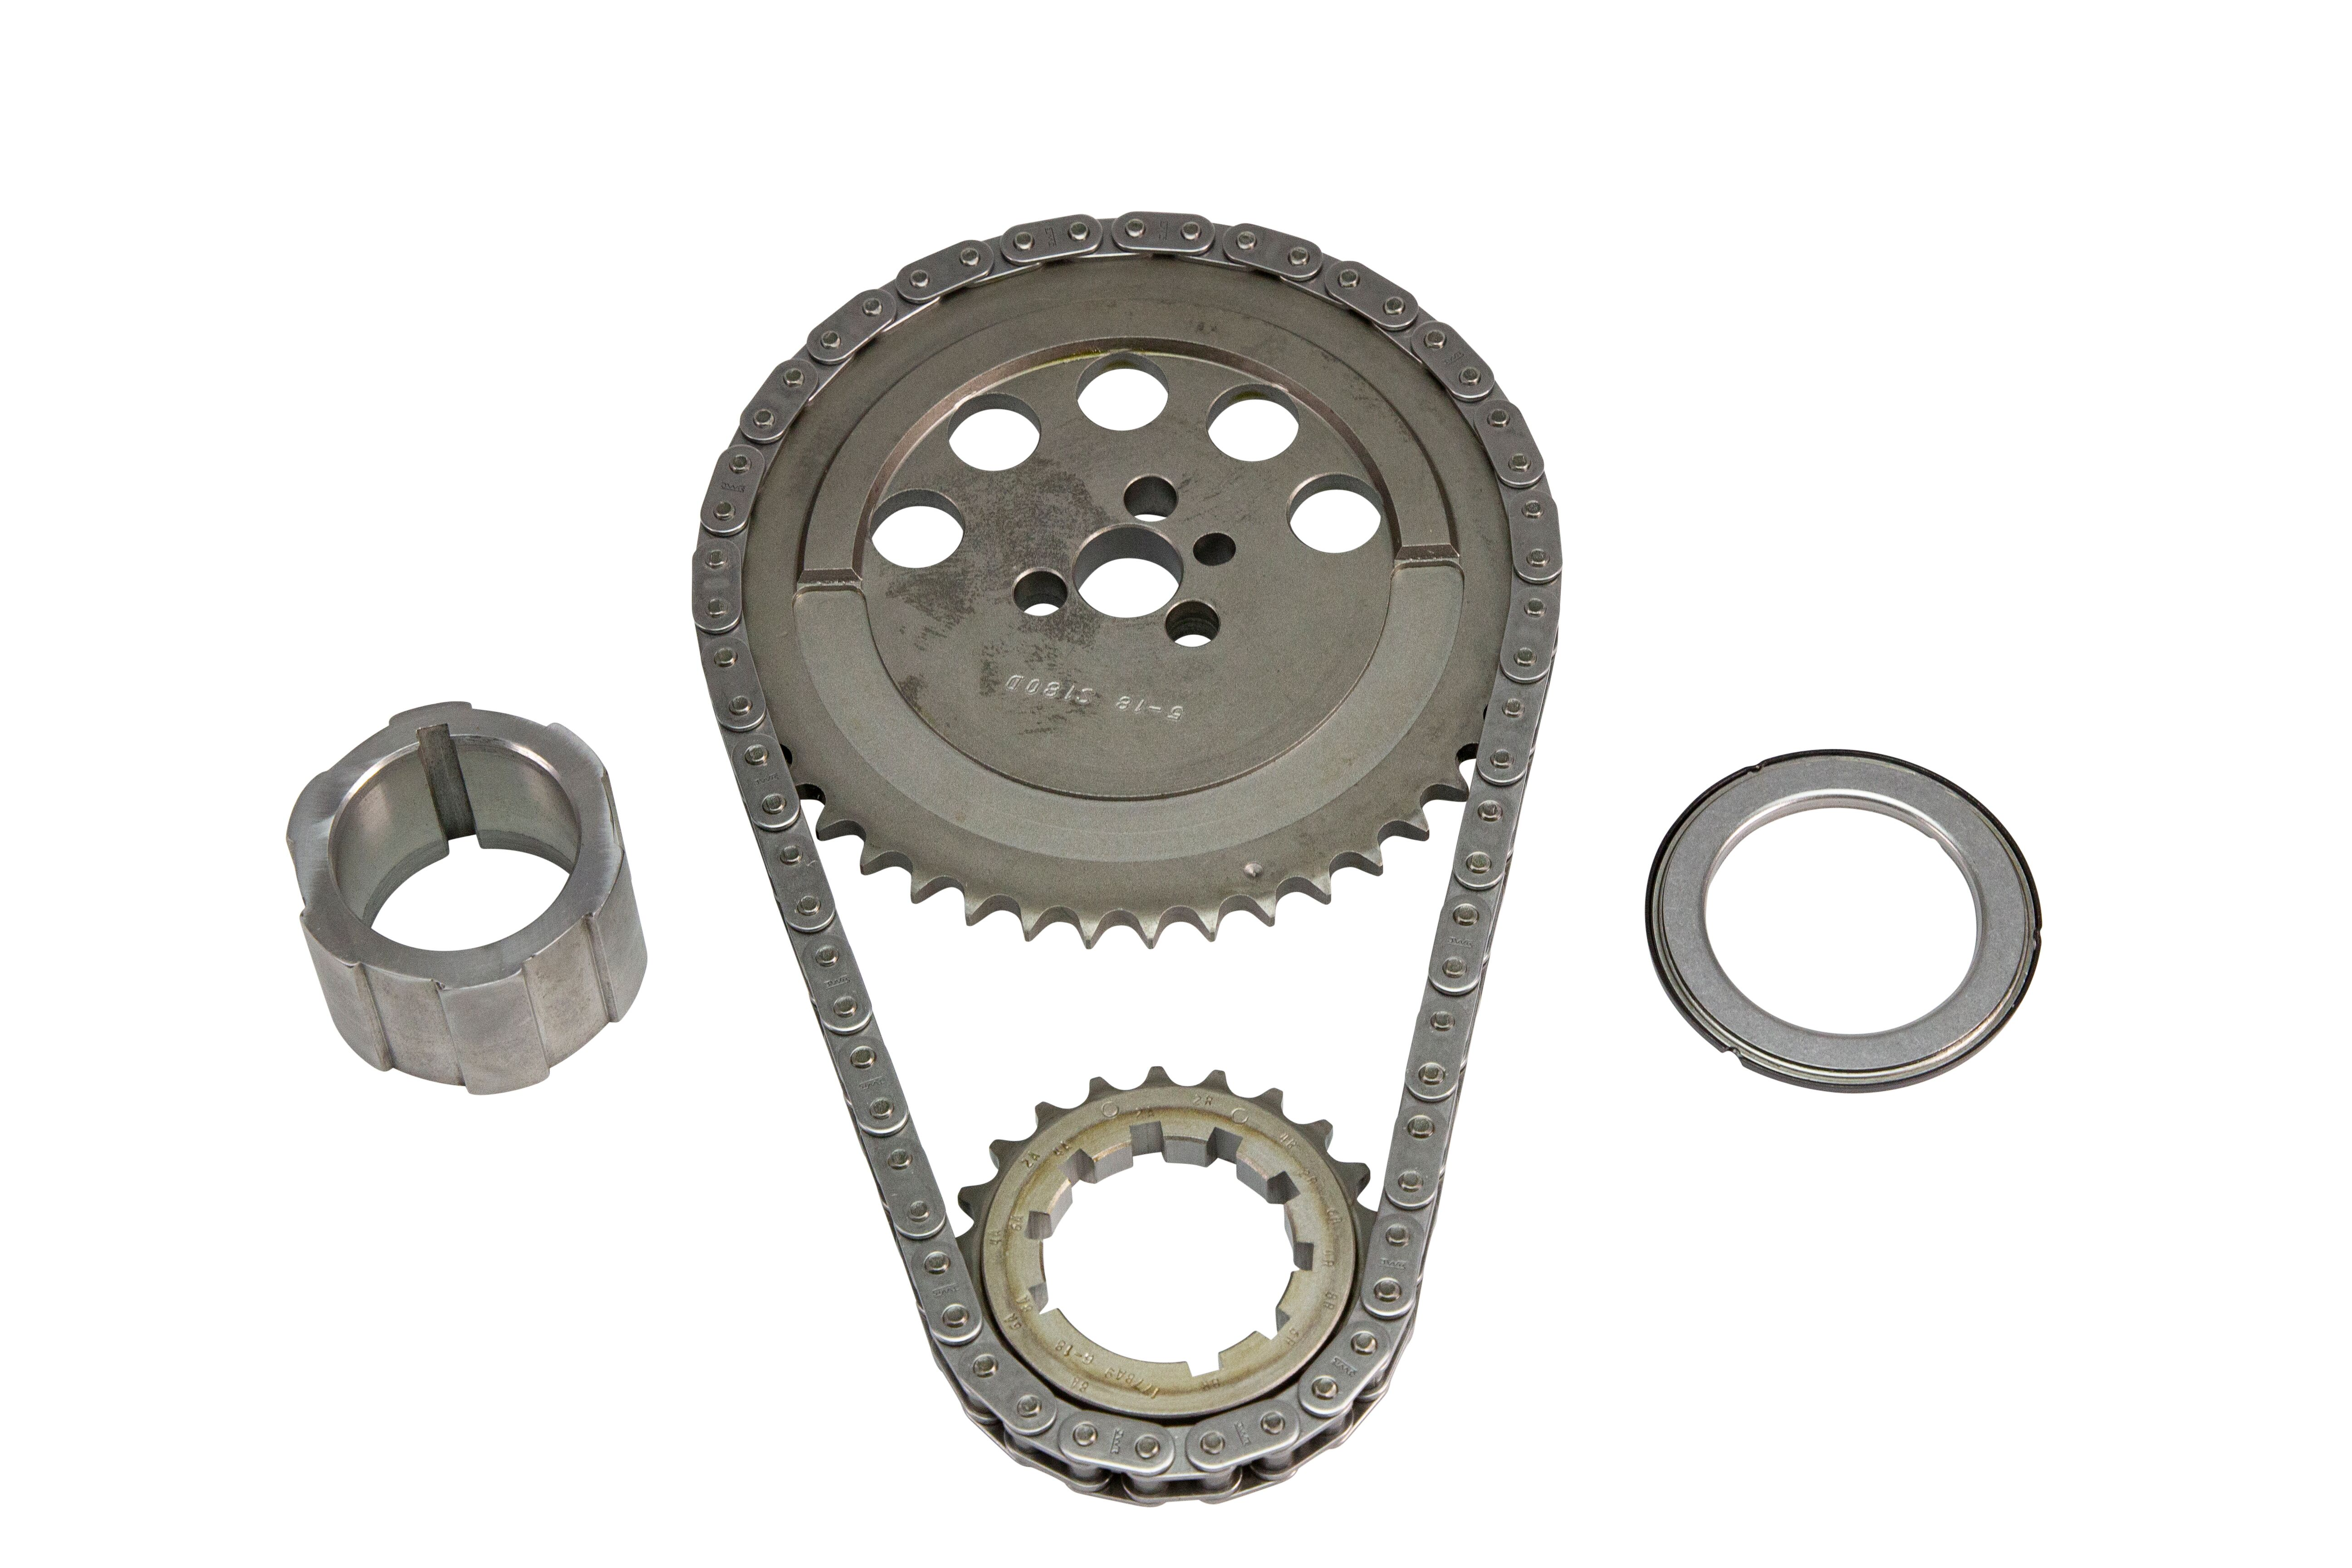 New Parts: COMP Cams® Keyway Adjustable Billet Timing Sets for GM LS Applications